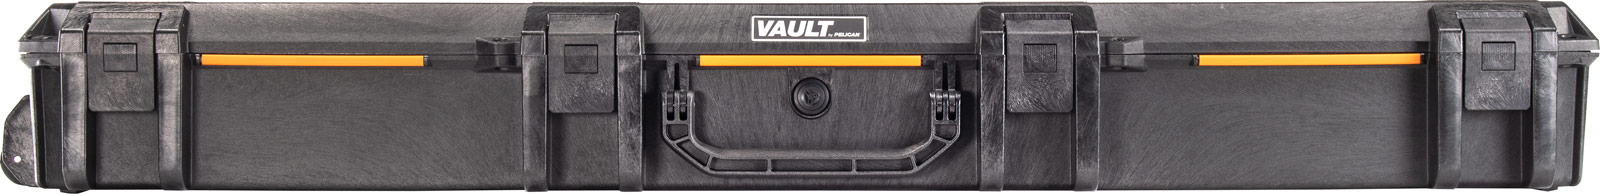 buy pelican vault v800 shop long hard case